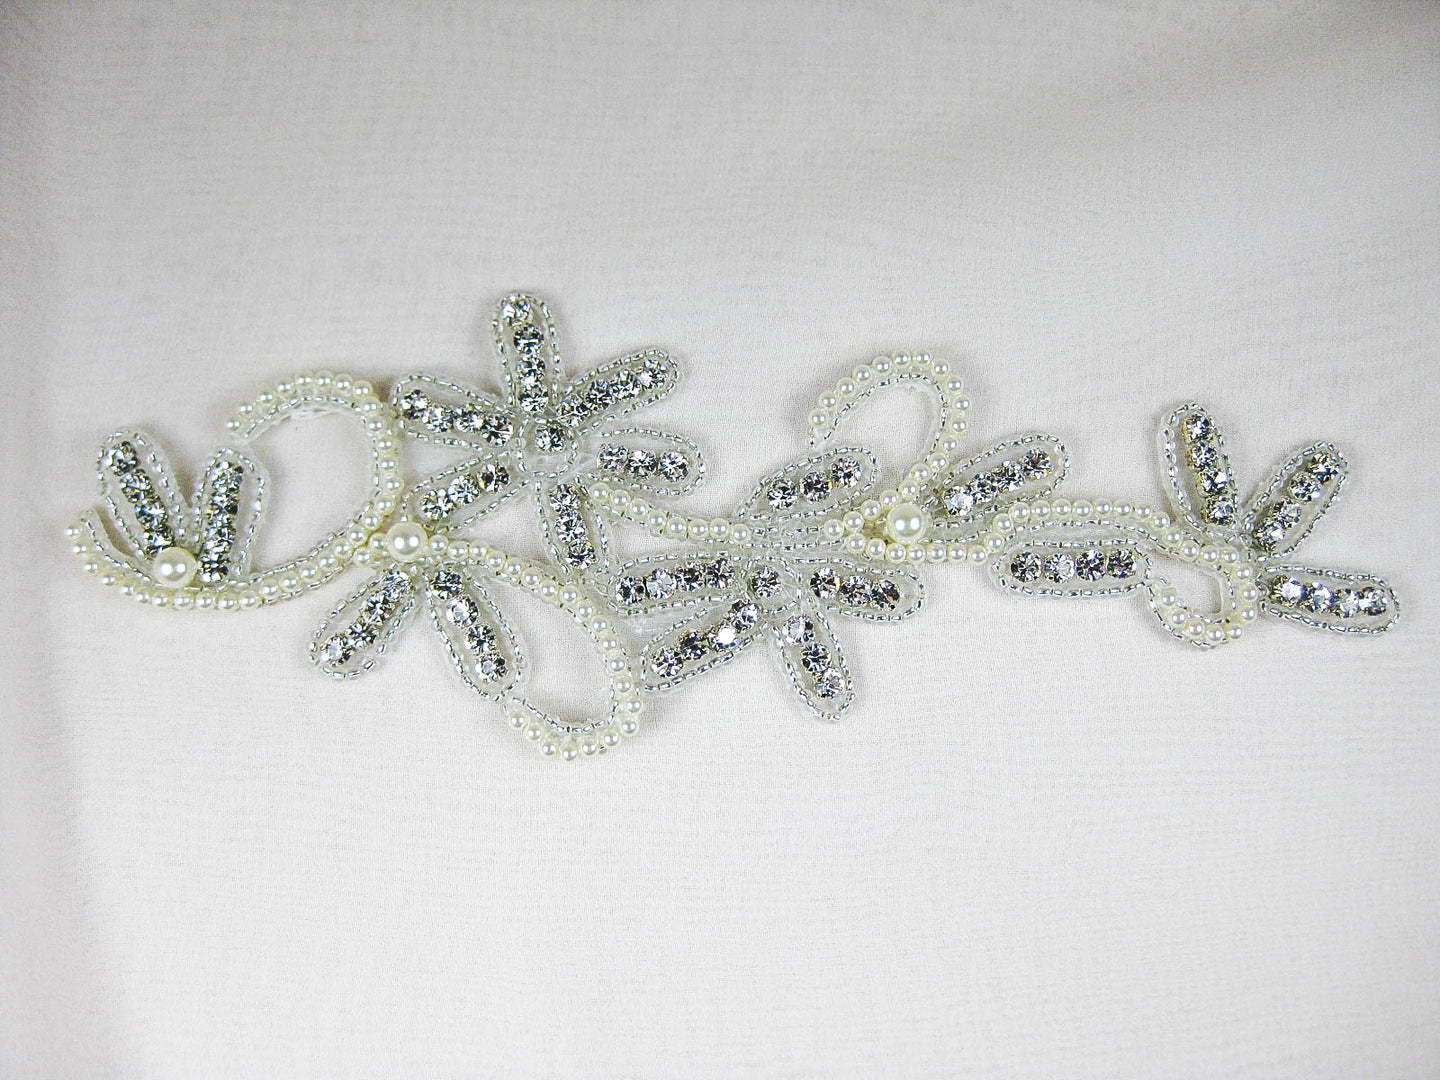 Applique 3 with Pearls